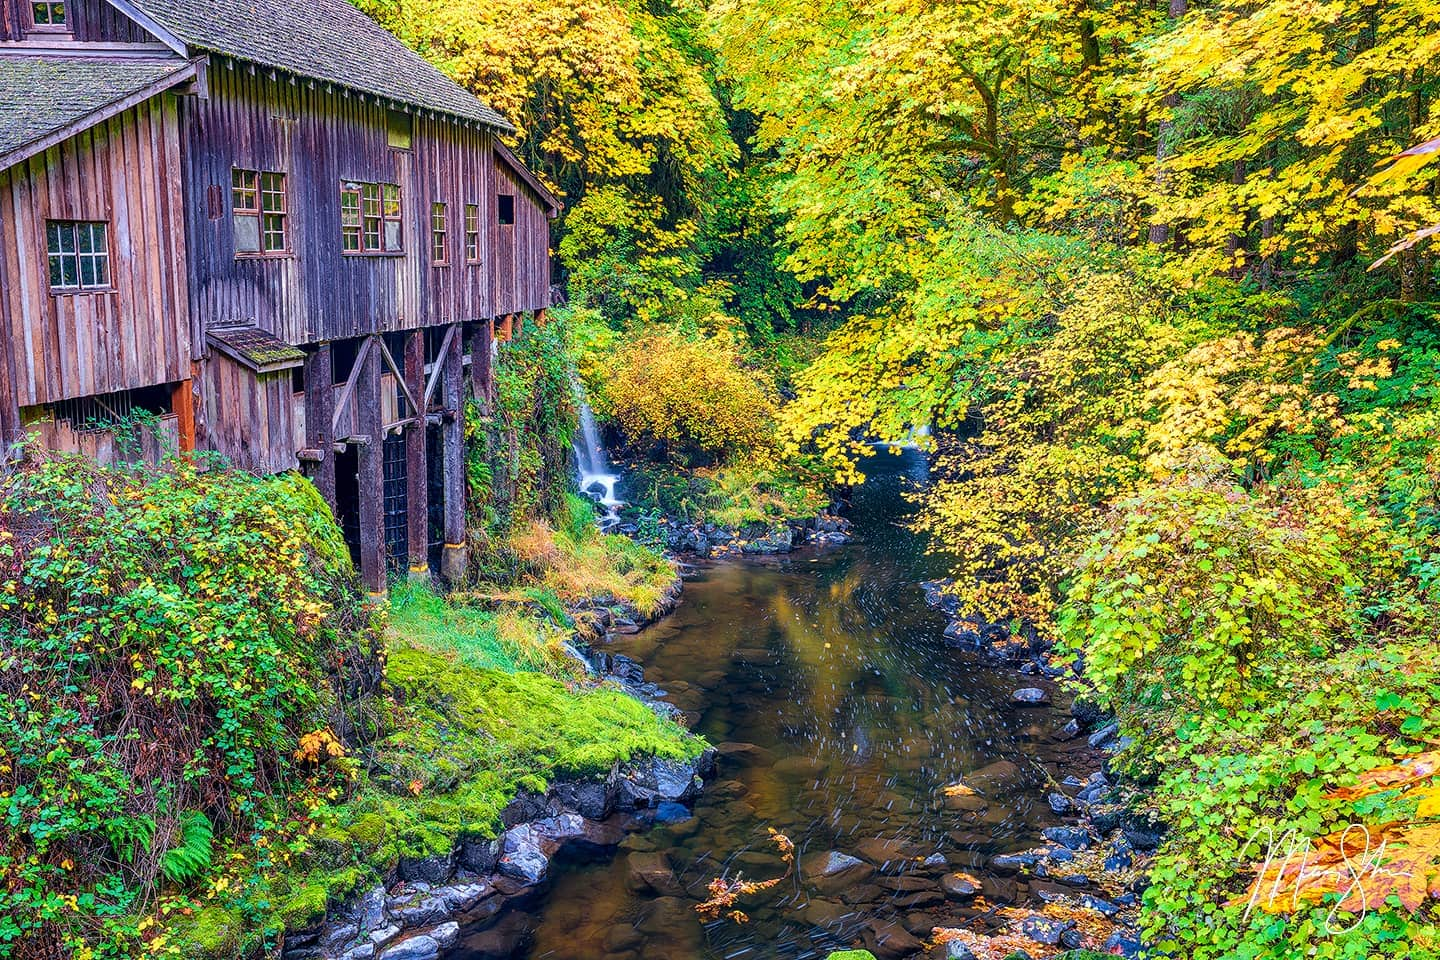 Open edition fine art print of Magical Mill from Mickey Shannon Photography. Location: Cedar Creek Grist Mill, Washington